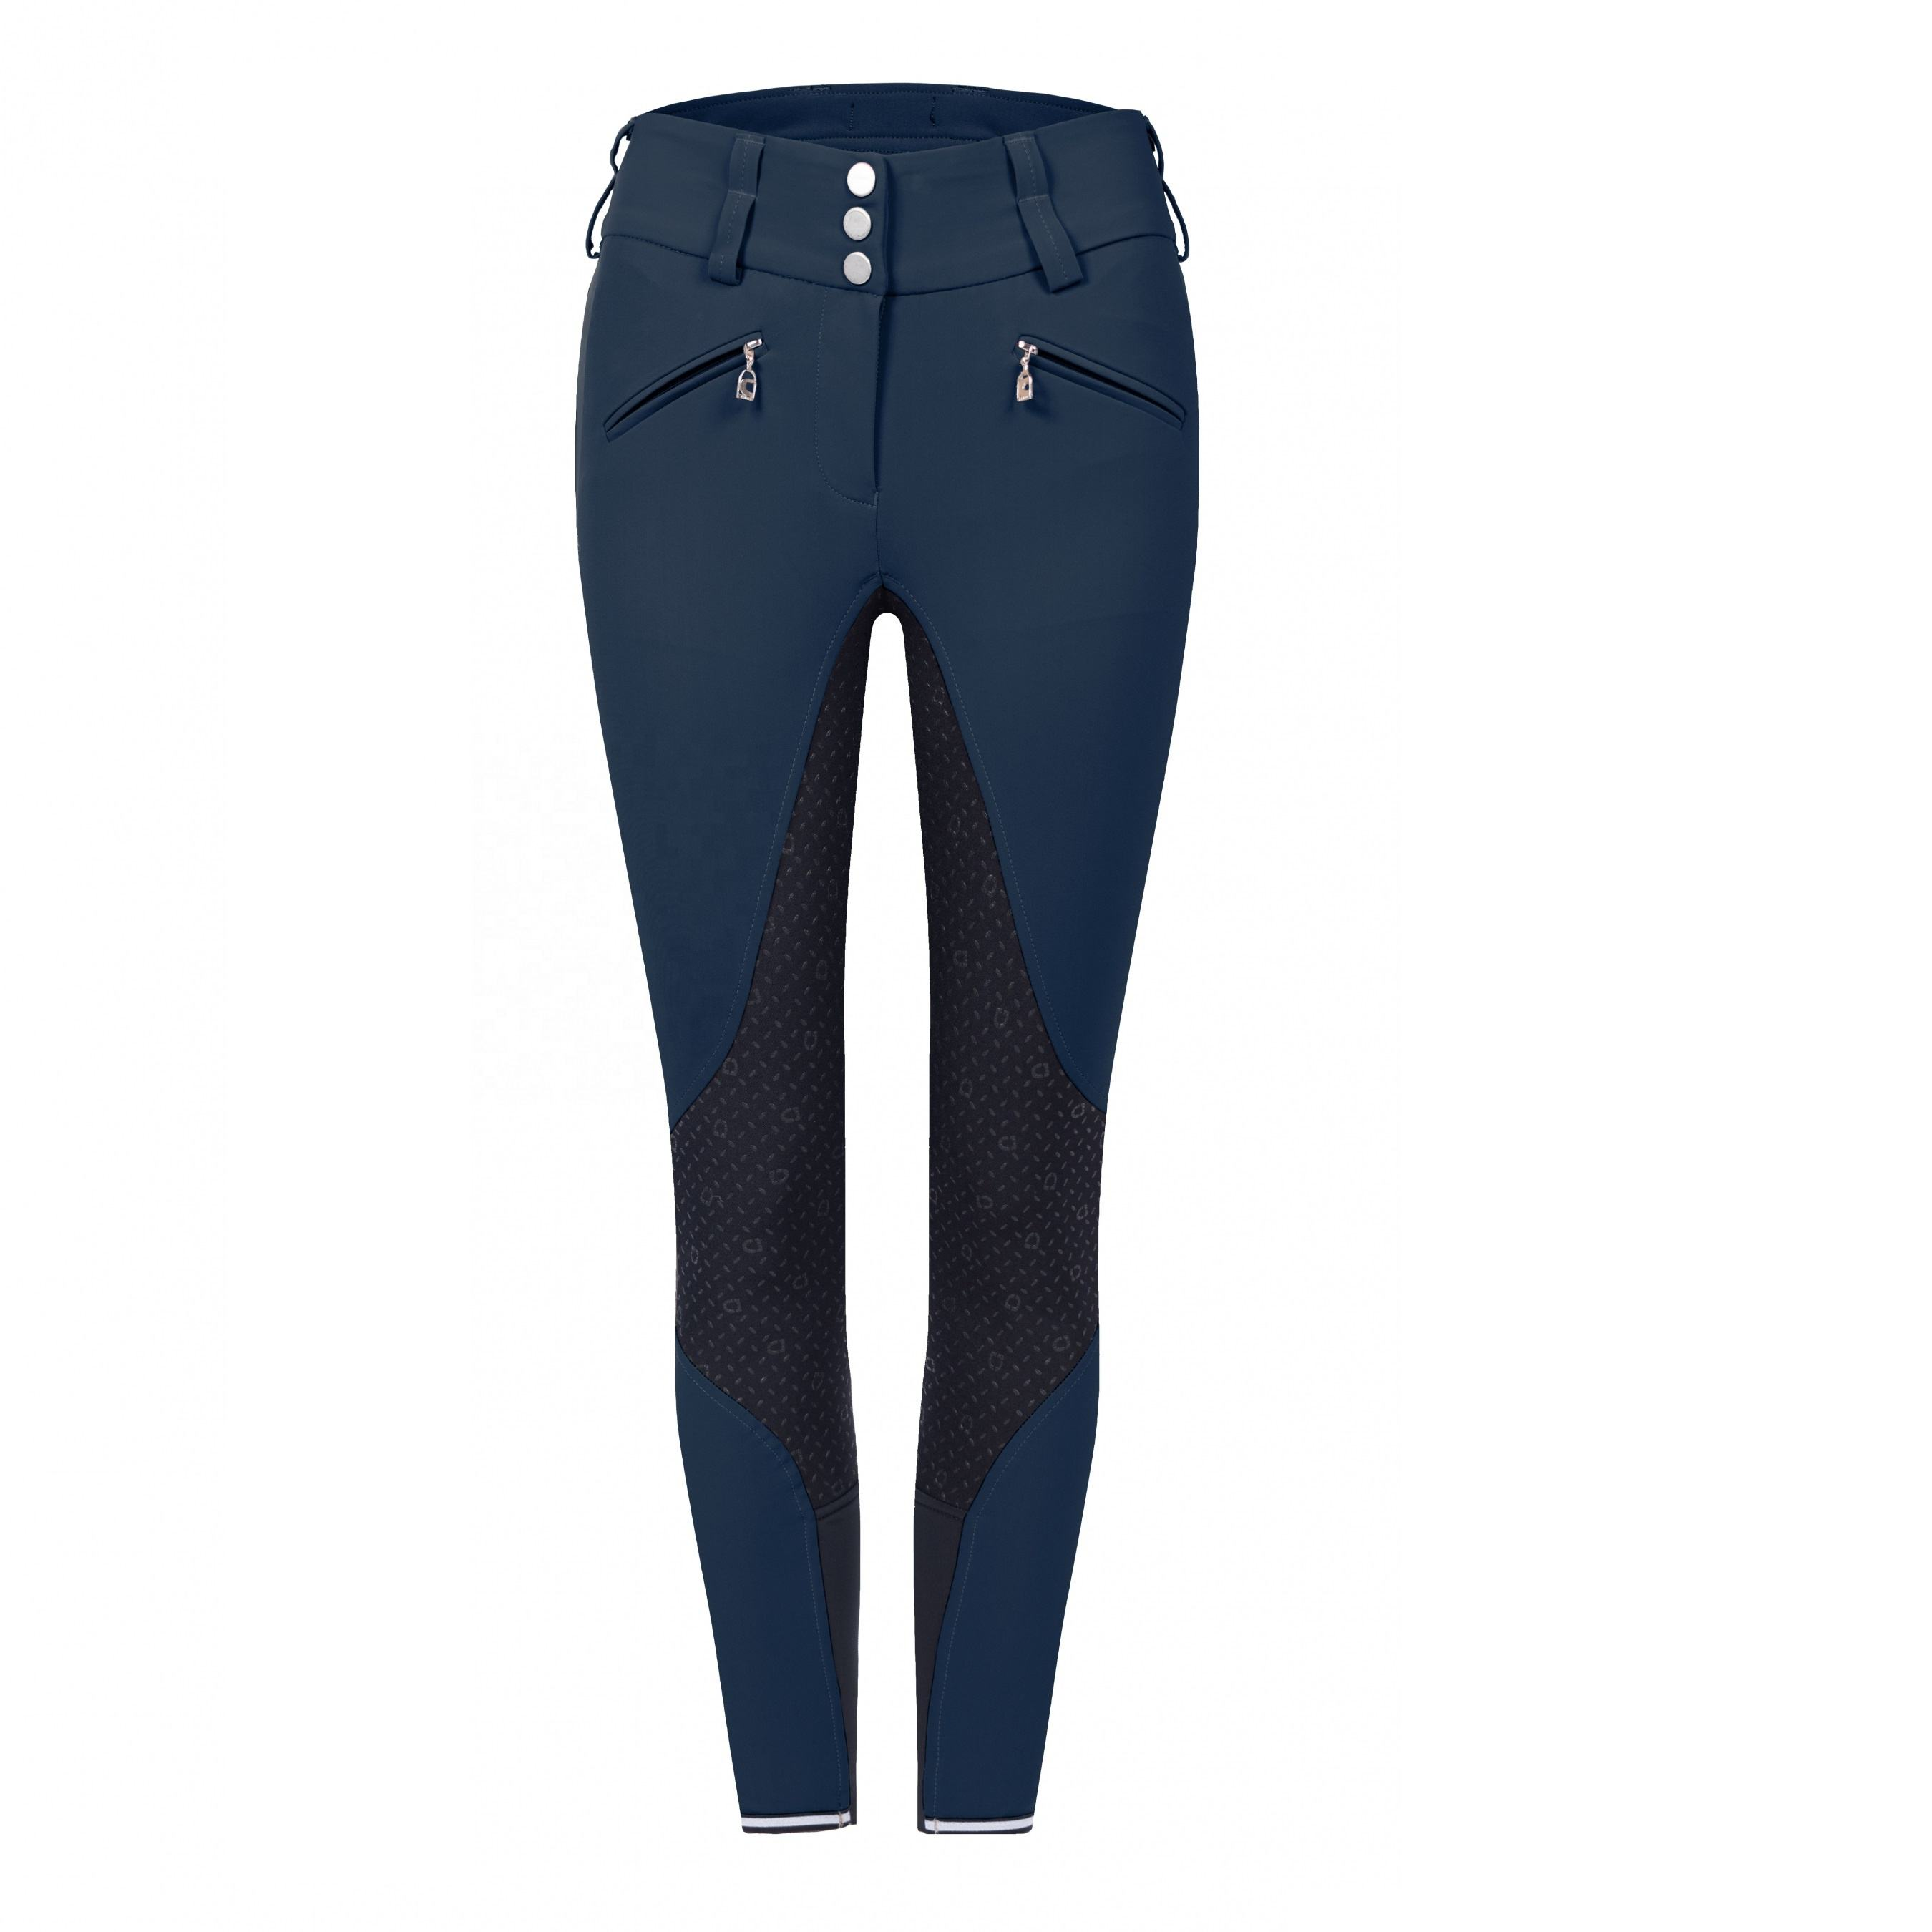 Softshell Horse Riding Breeches with Full Seat Silicone (Customizable as per buyer requirement)